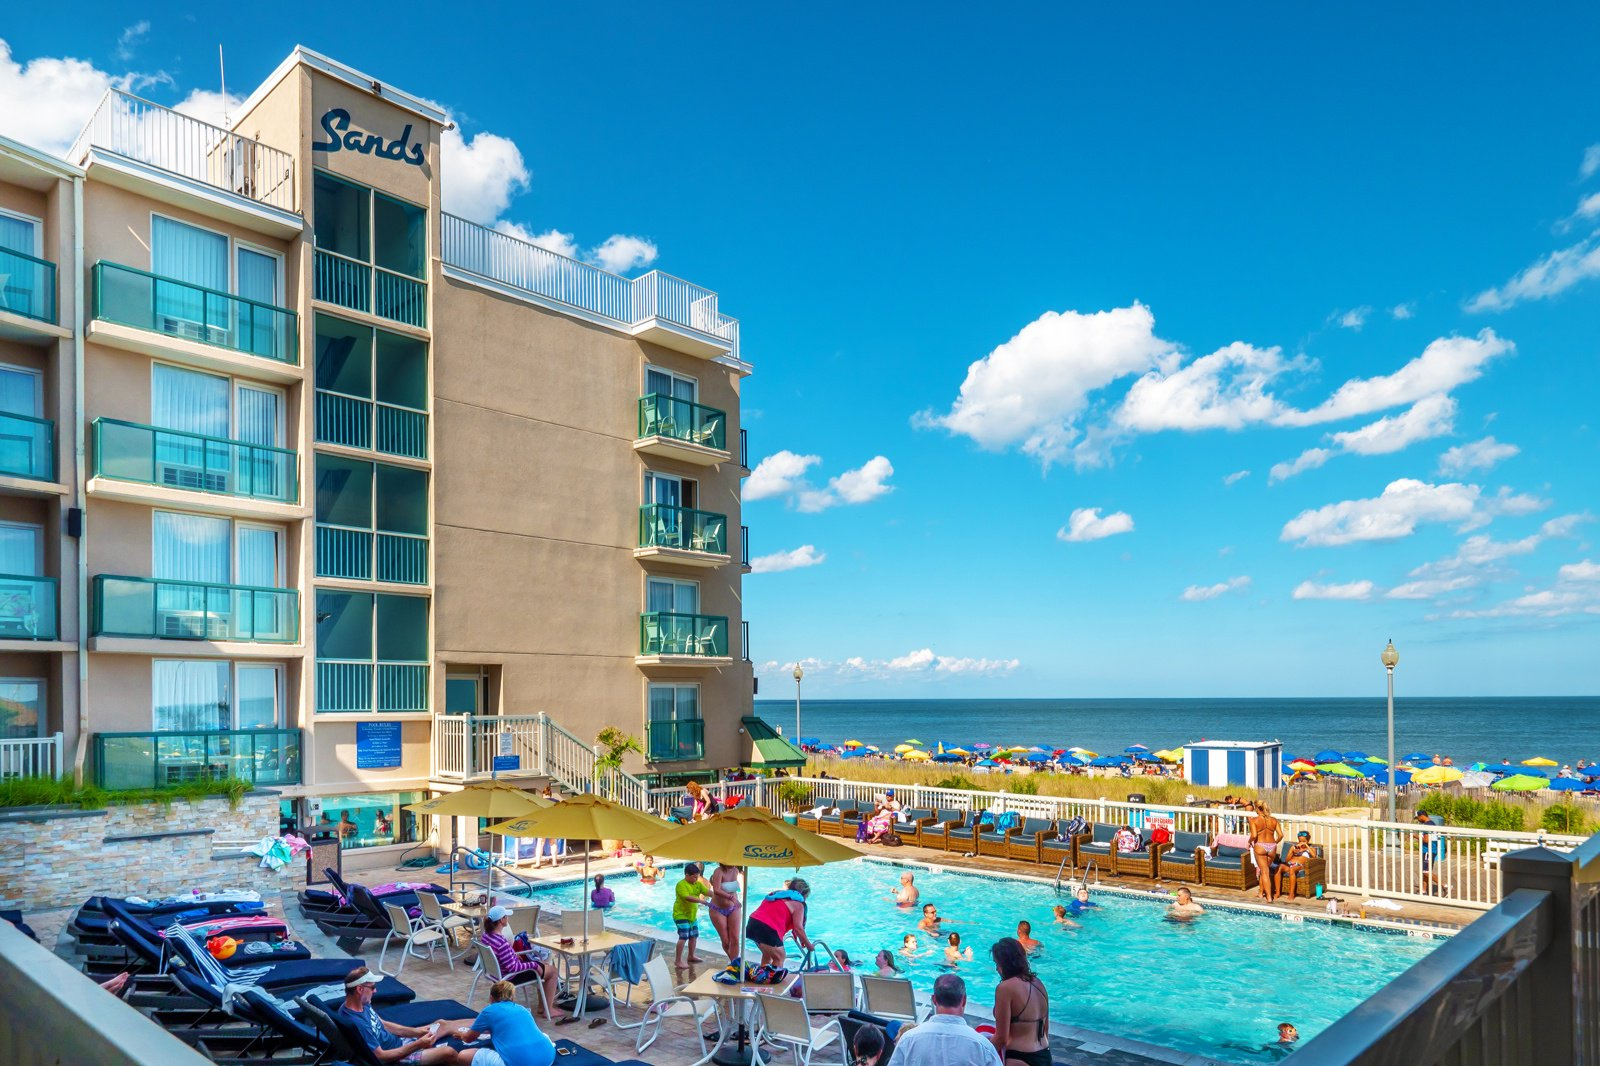 Atlantic Sands Rehoboth   Boardwalk Oceanfront, Outdoor Pool  16 miles  302-227-2511